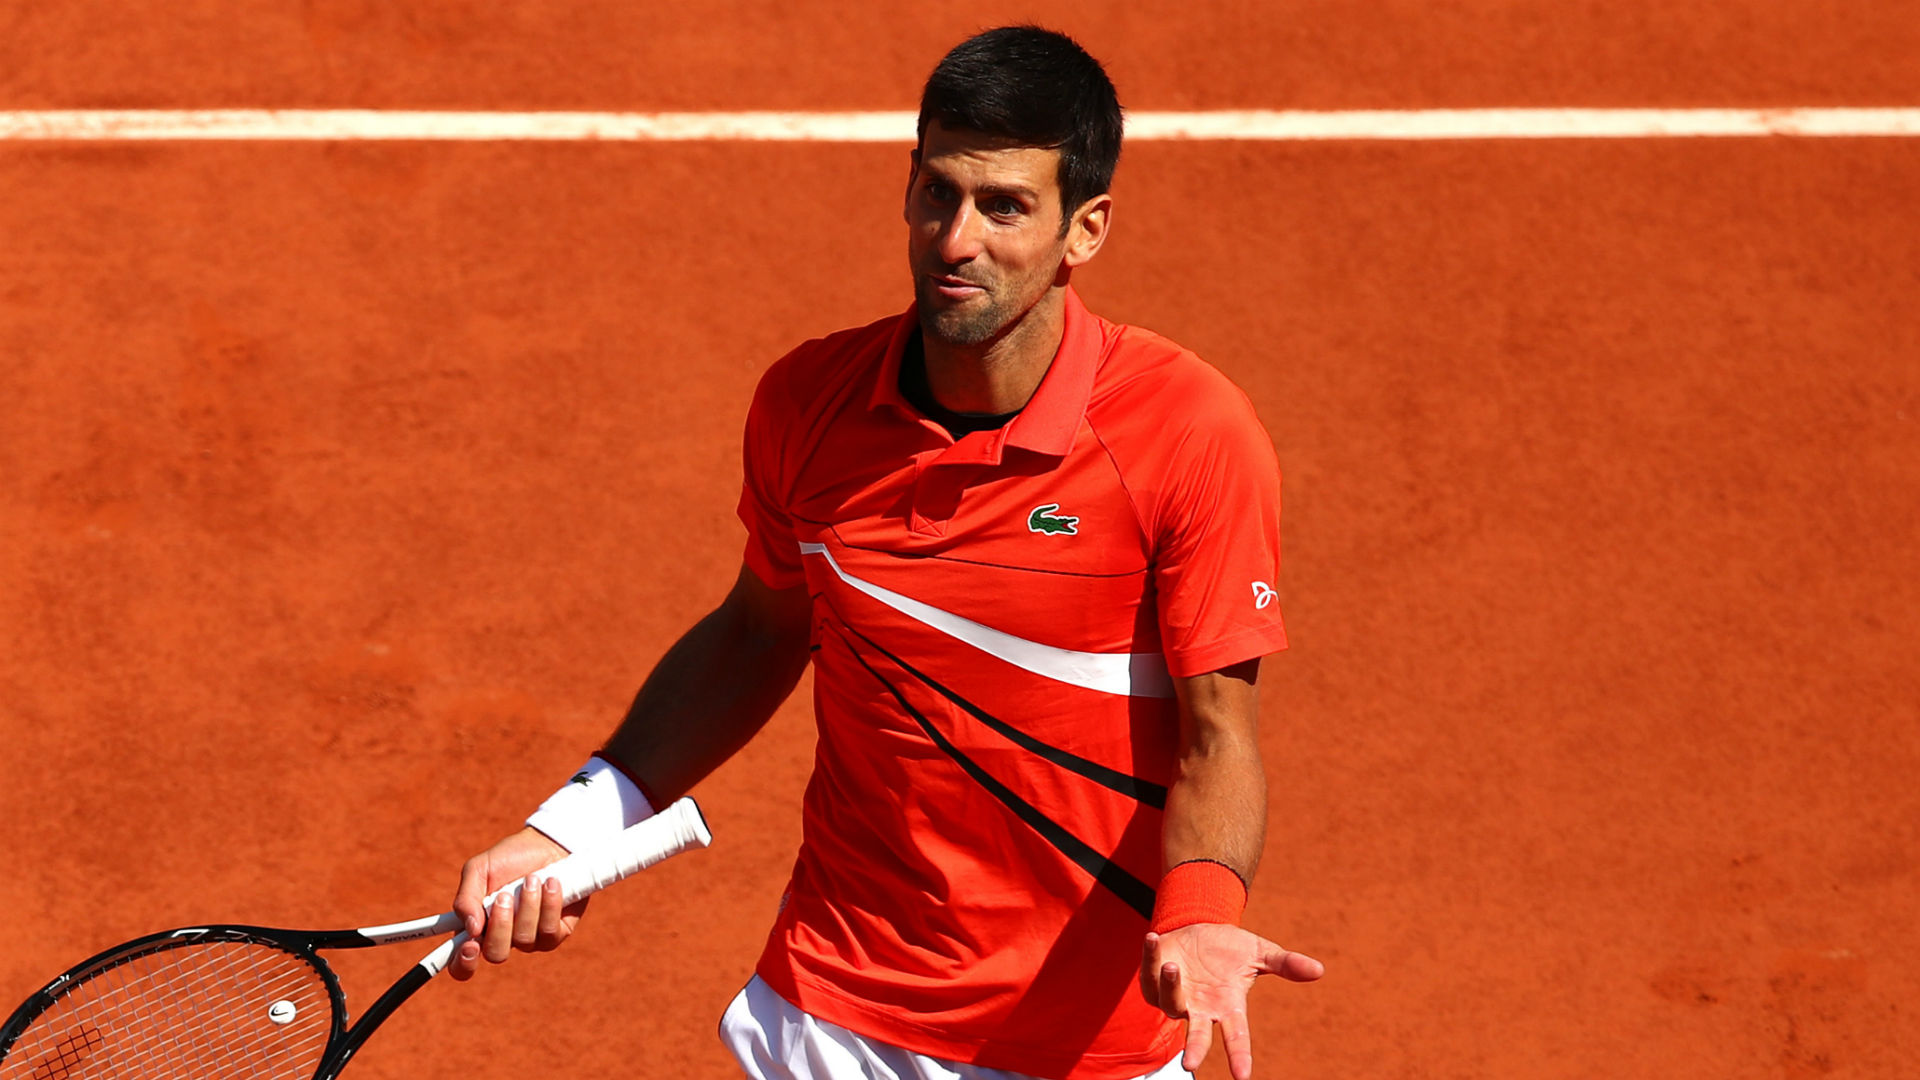 Djokovic surprised by reported Federer, Nadal Wimbledon seedings